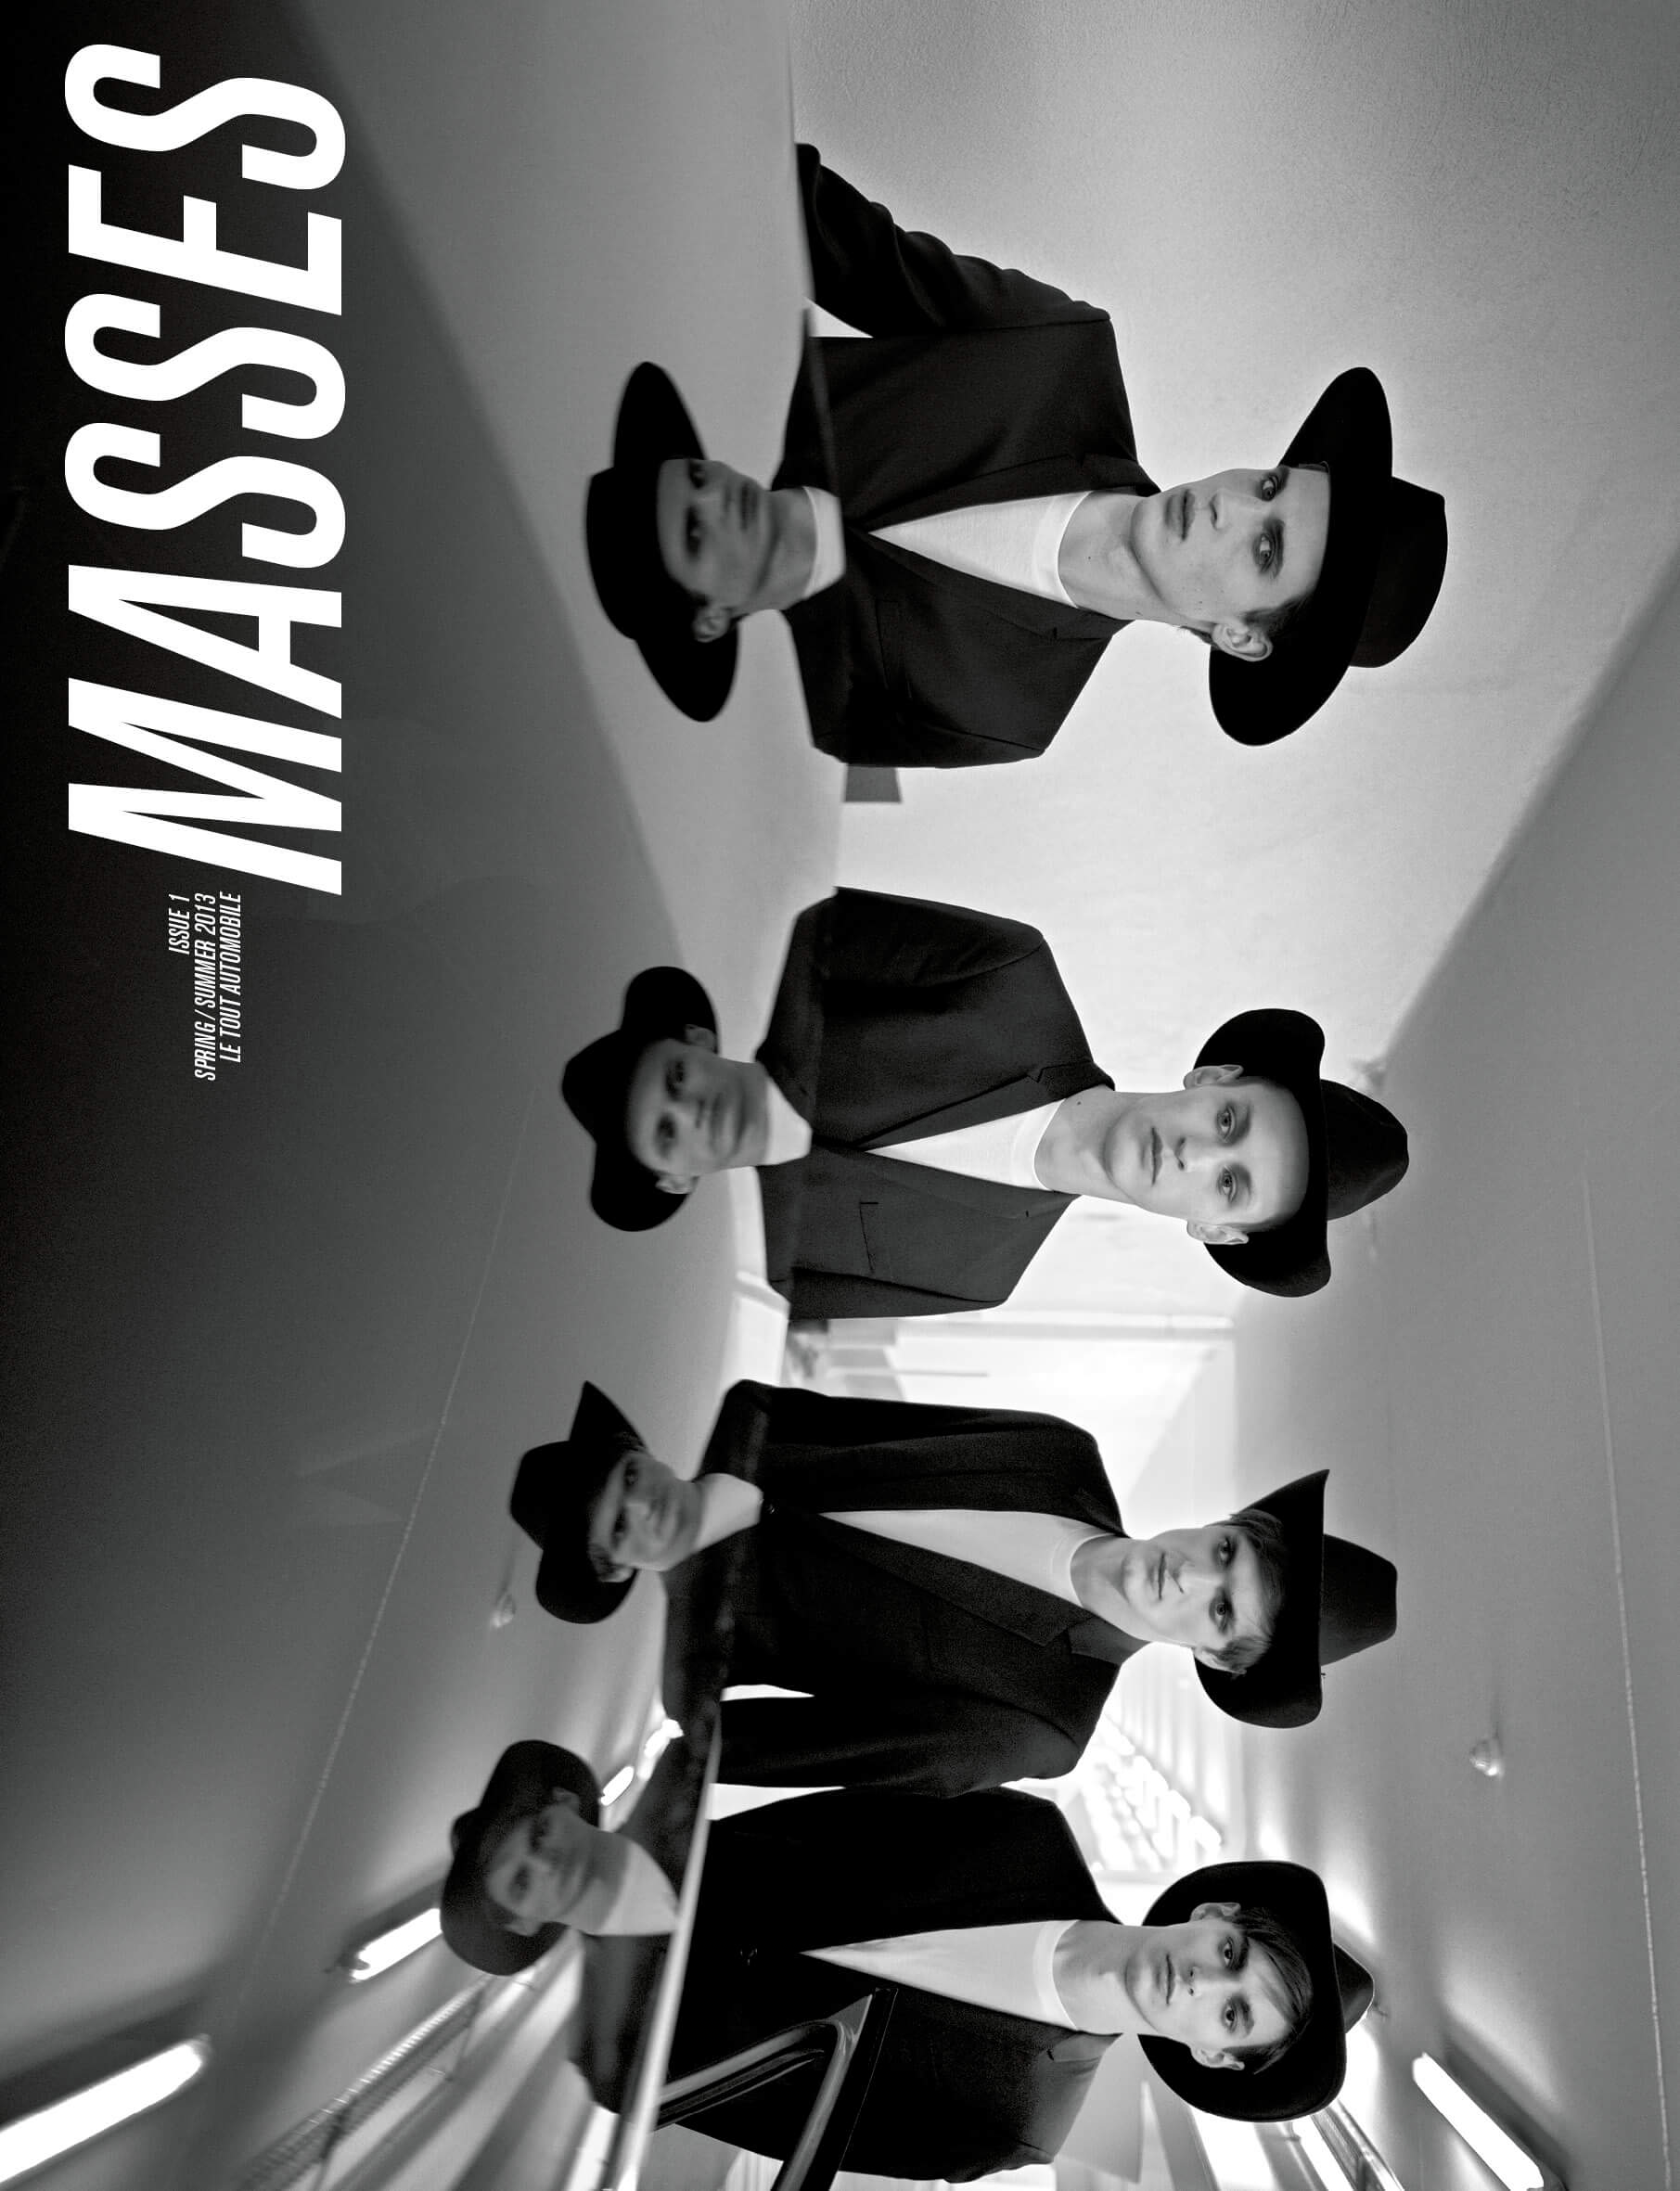 MASSES Magazine Issue No. 1 – Cover photographed by Kira Bunse with James Gatenby, Wojtek Czerski, Adrien Volkov and Felix Lalonde